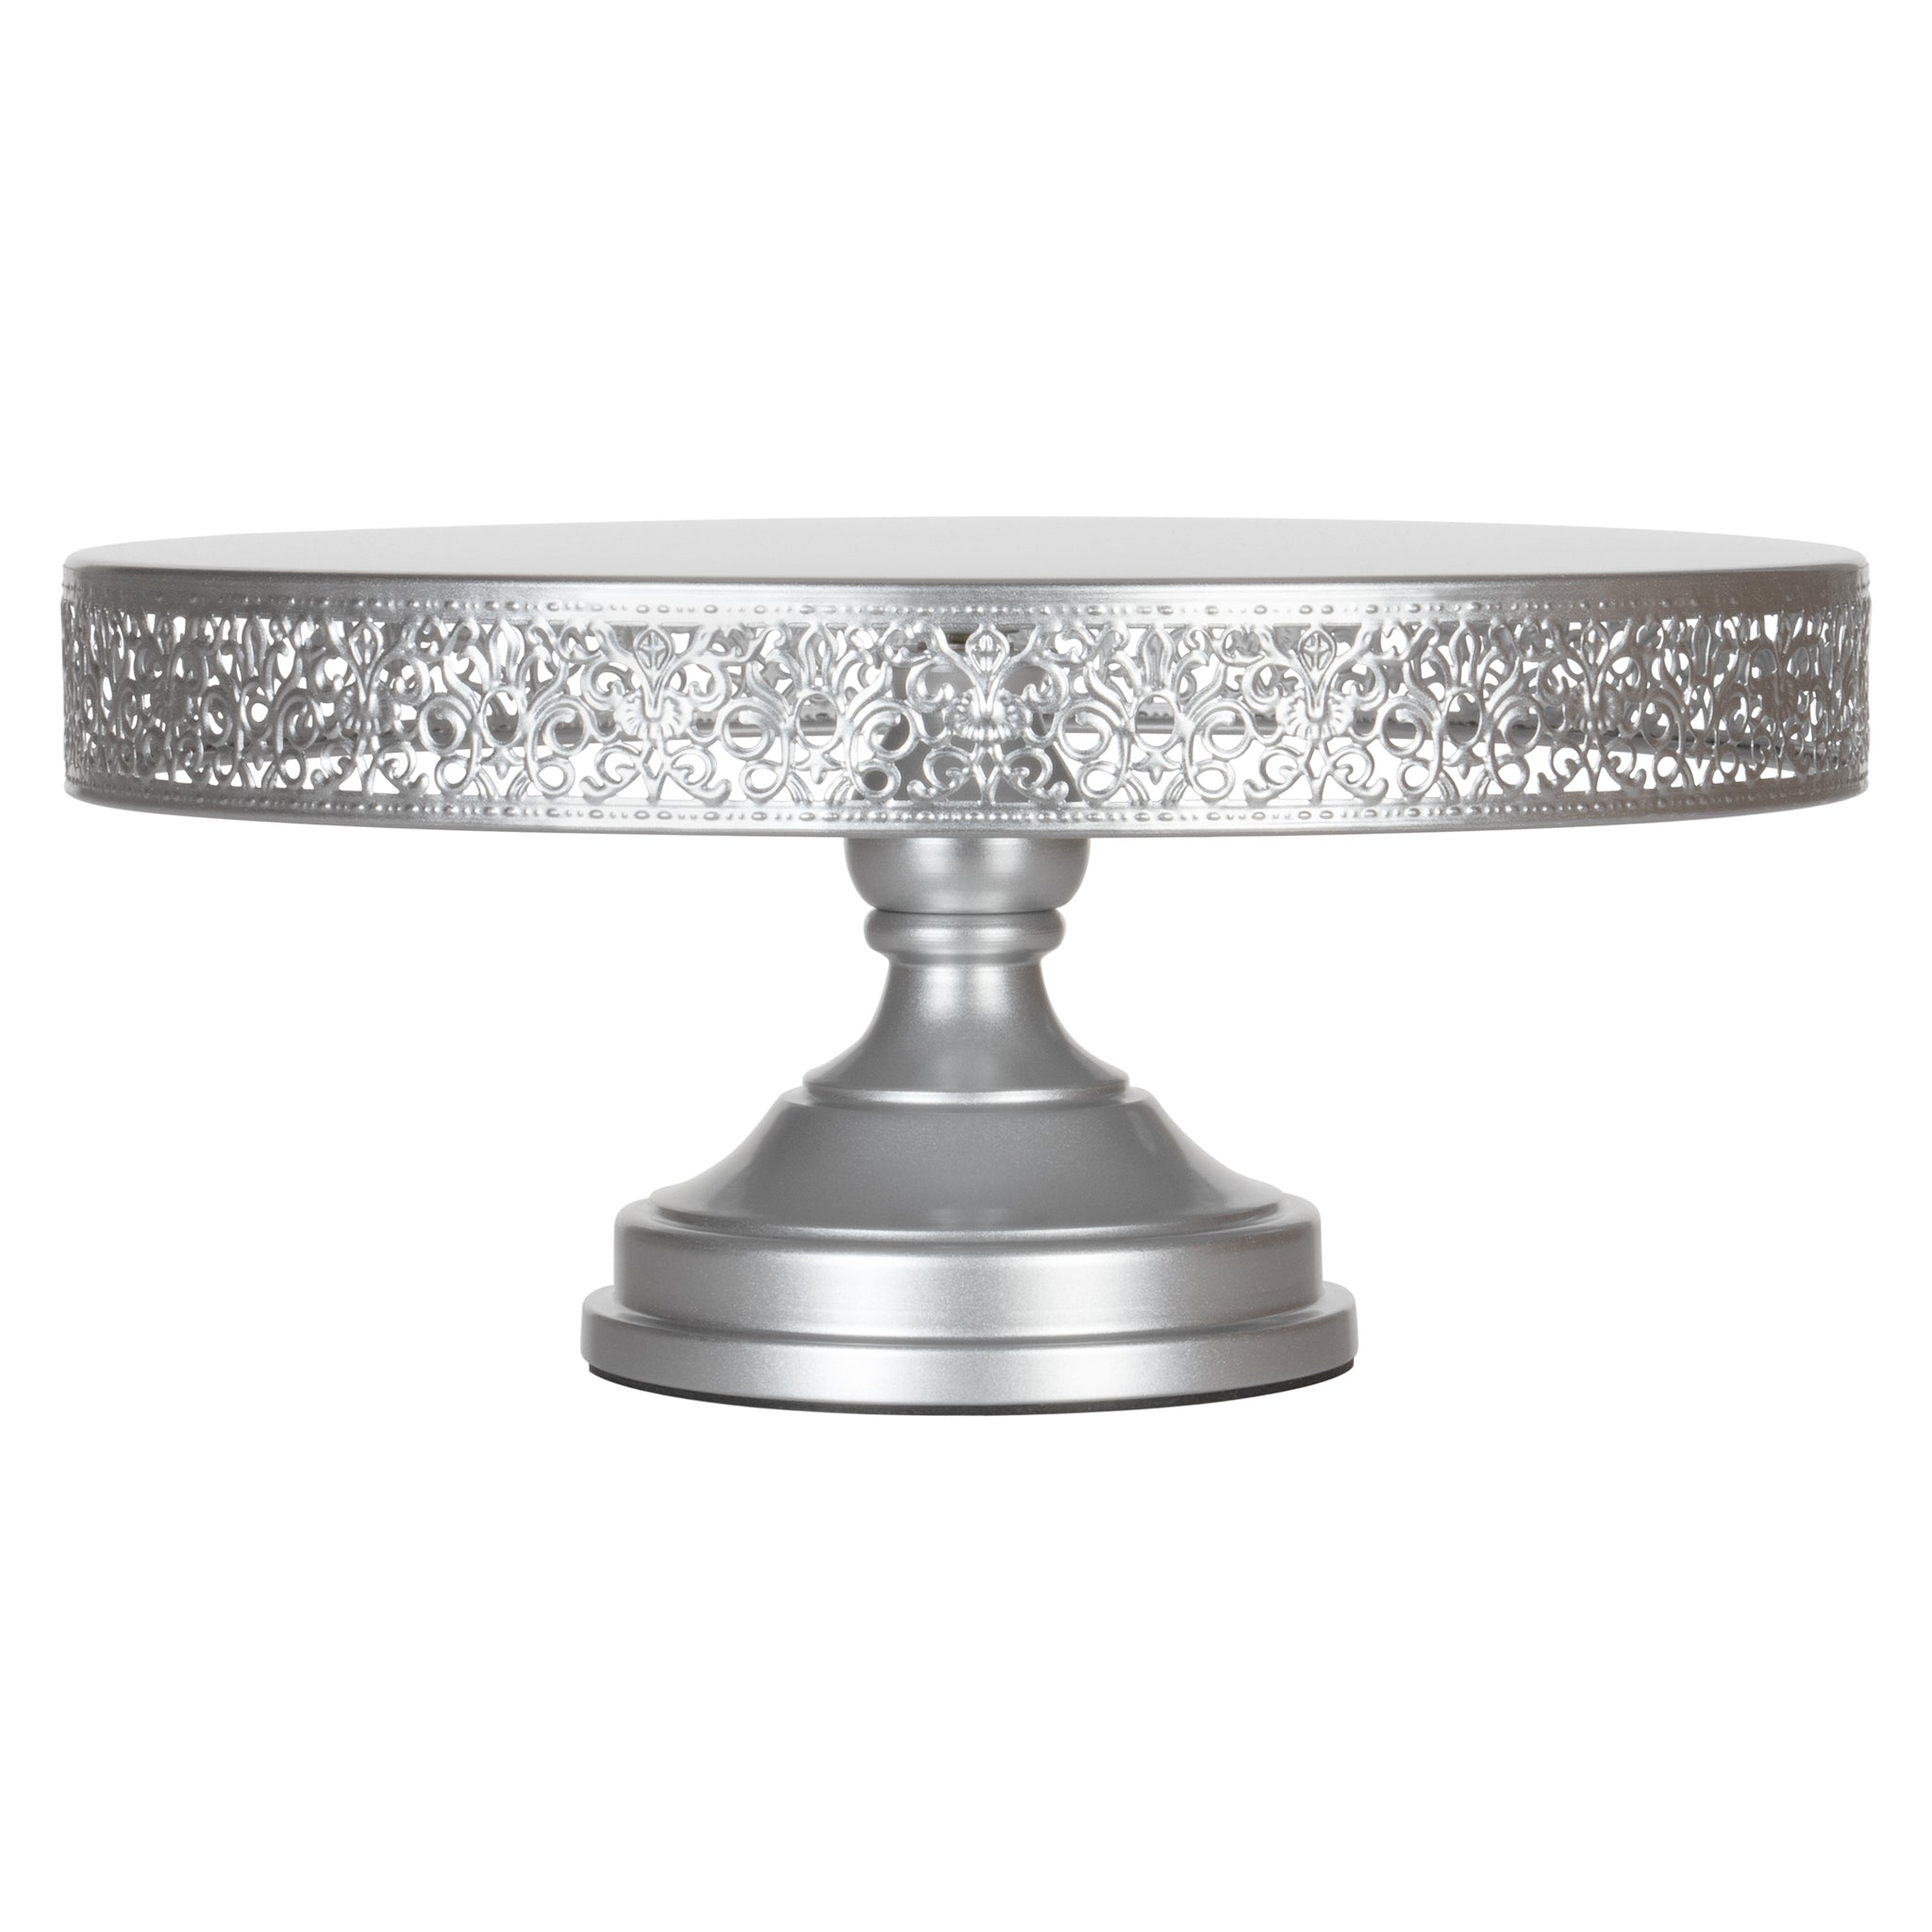 Amalfi Decor 16 Inch Round Vintage Metal Wedding Cake Stand (Silver) | Stainless Steel Frame